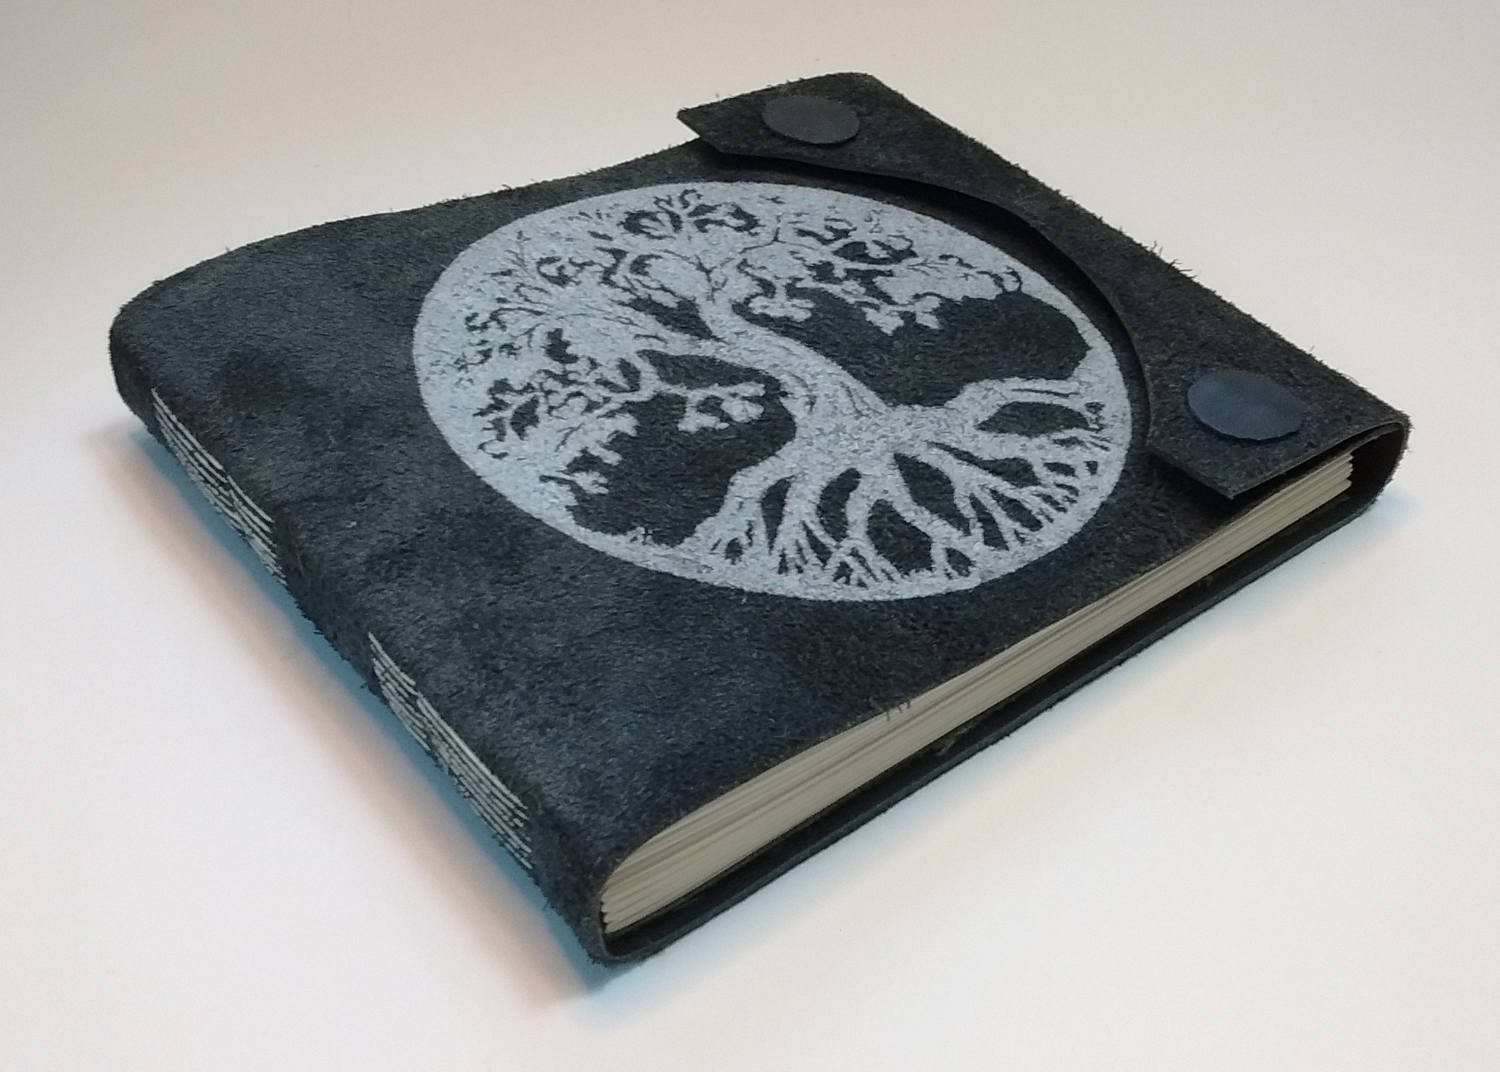 Hand-made leather-bound book with Tree-Of-Life art hand-printed on cover, magnetic snap closures